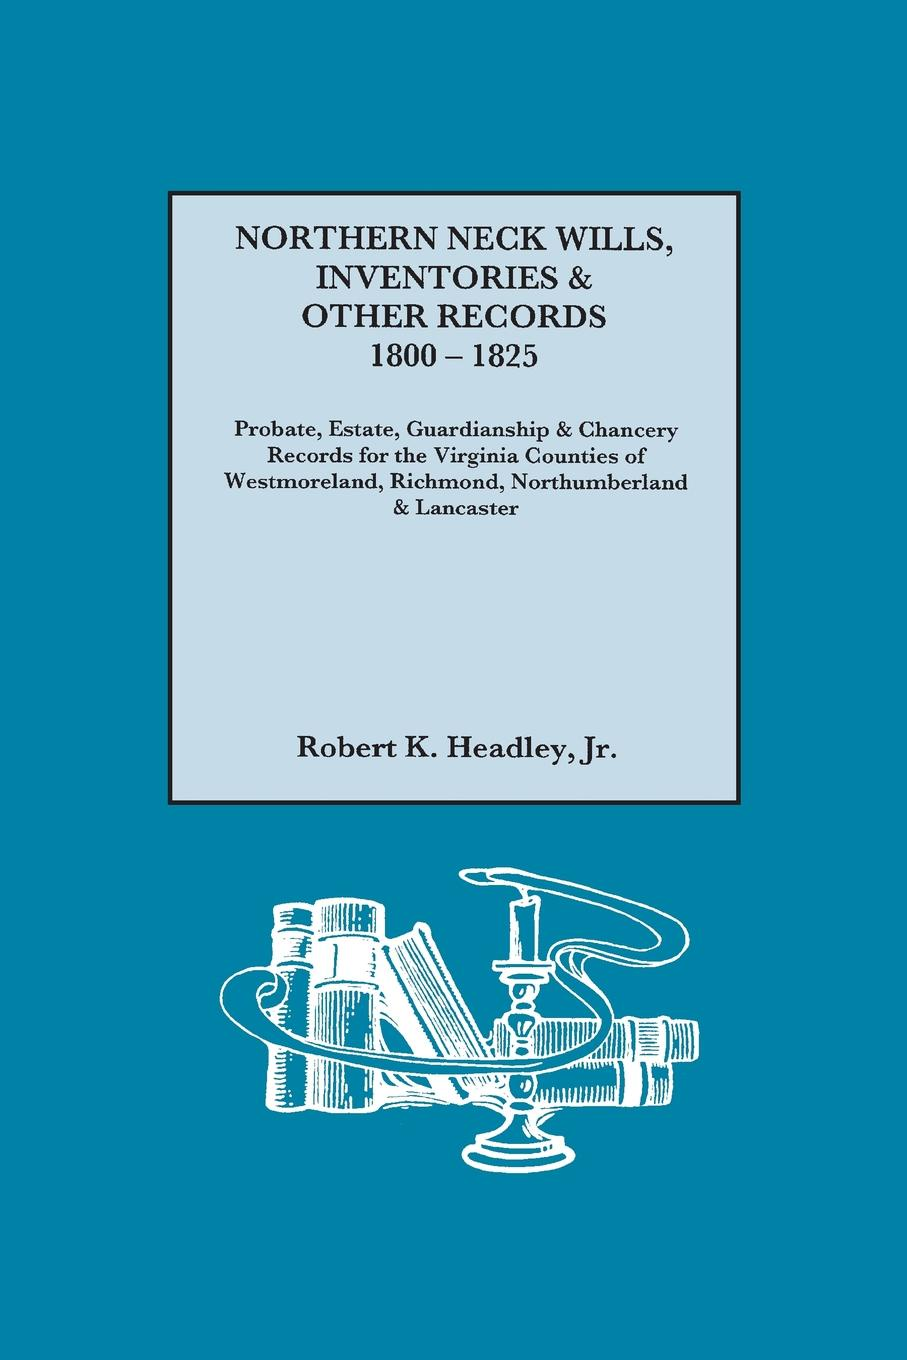 Kr Robert K. Headley Northern Neck Wills, Inventories & Other Records, 1800-1825. Probate, Estate, Guardianship Chancery Records for the Virginia Counties of Westmorelan